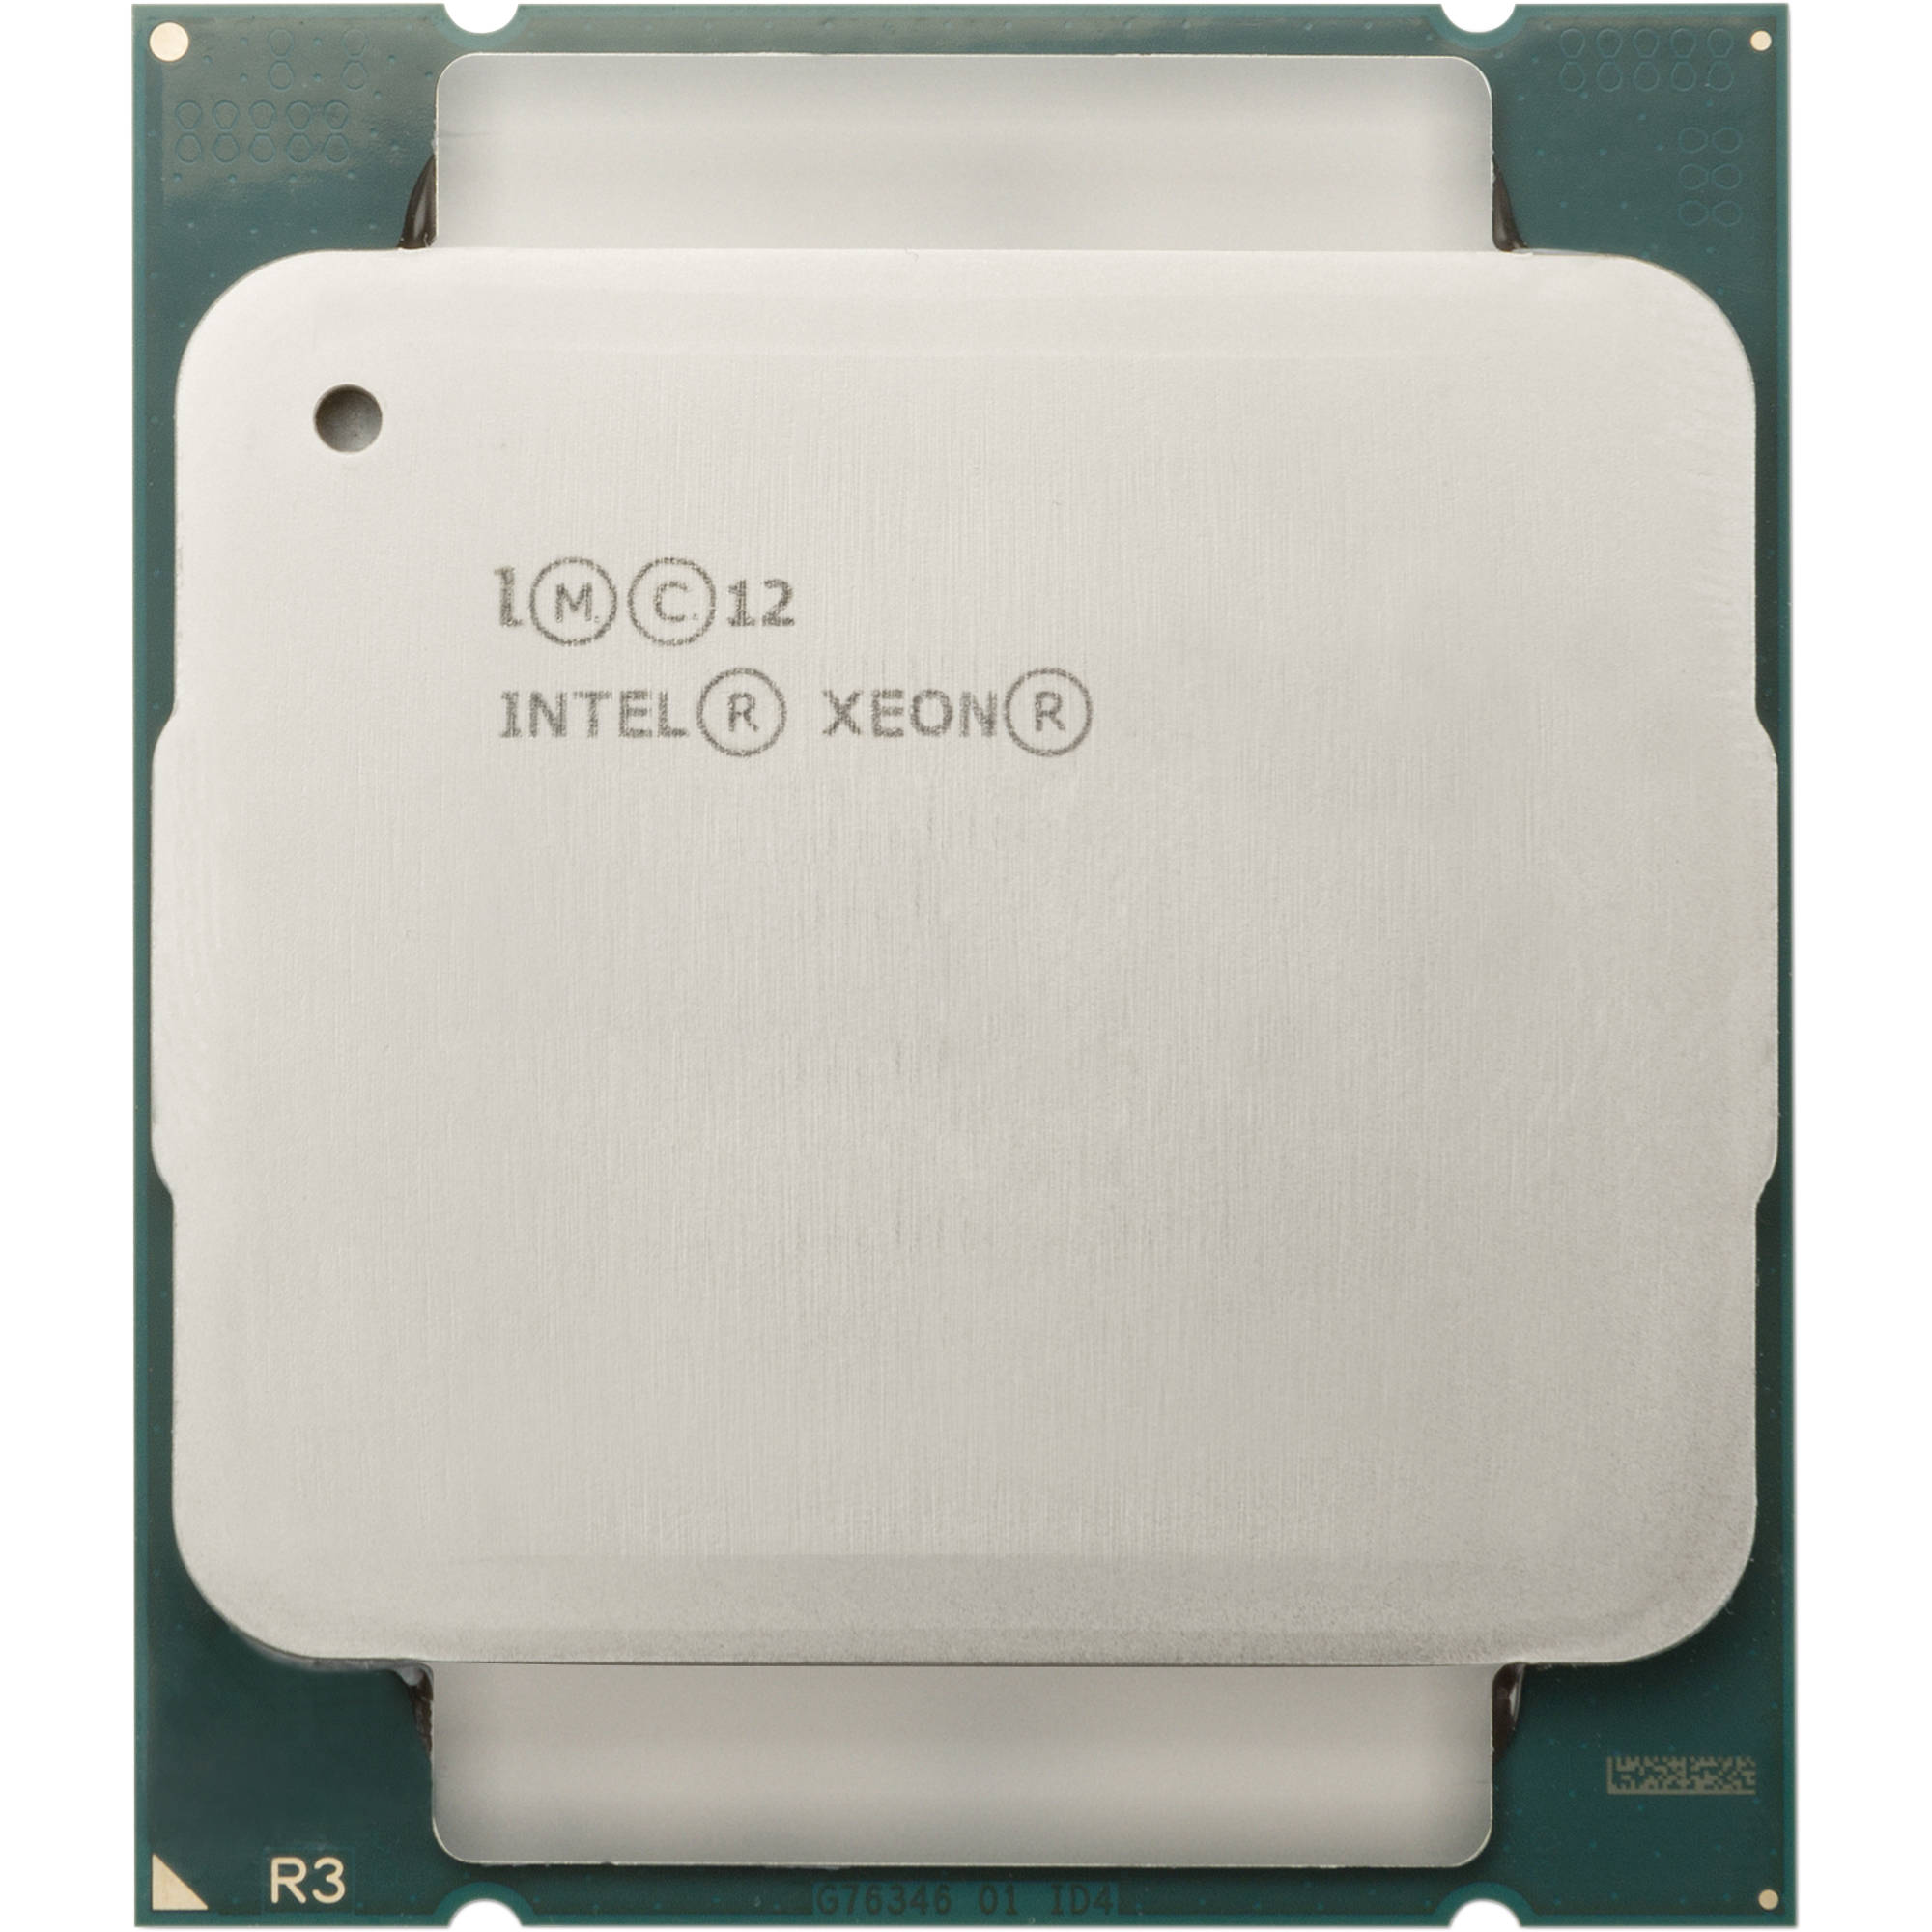 HP Xeon E5-2643 v3 3.4 GHz 6-Core Processor